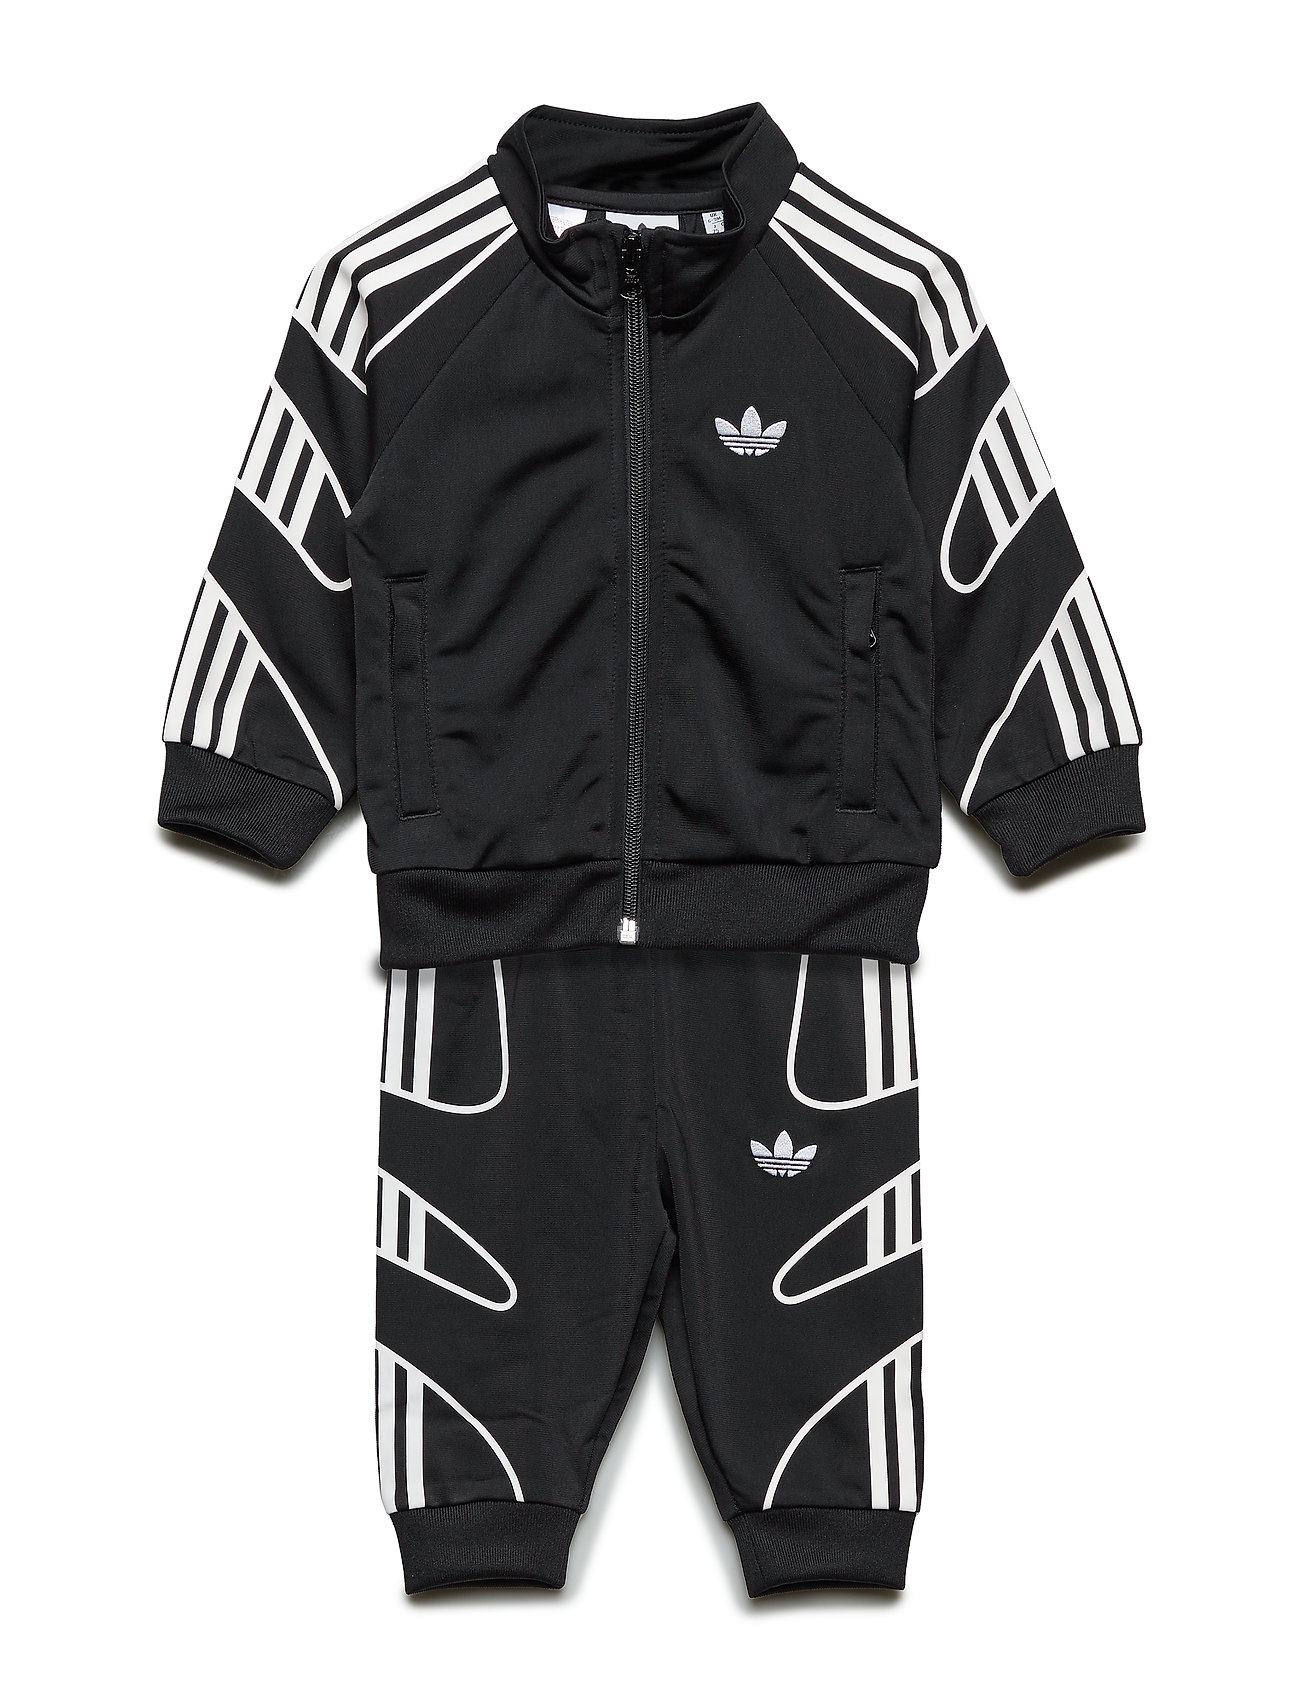 adidas Originals FLAMESTRK TS - BLACK/WHITE